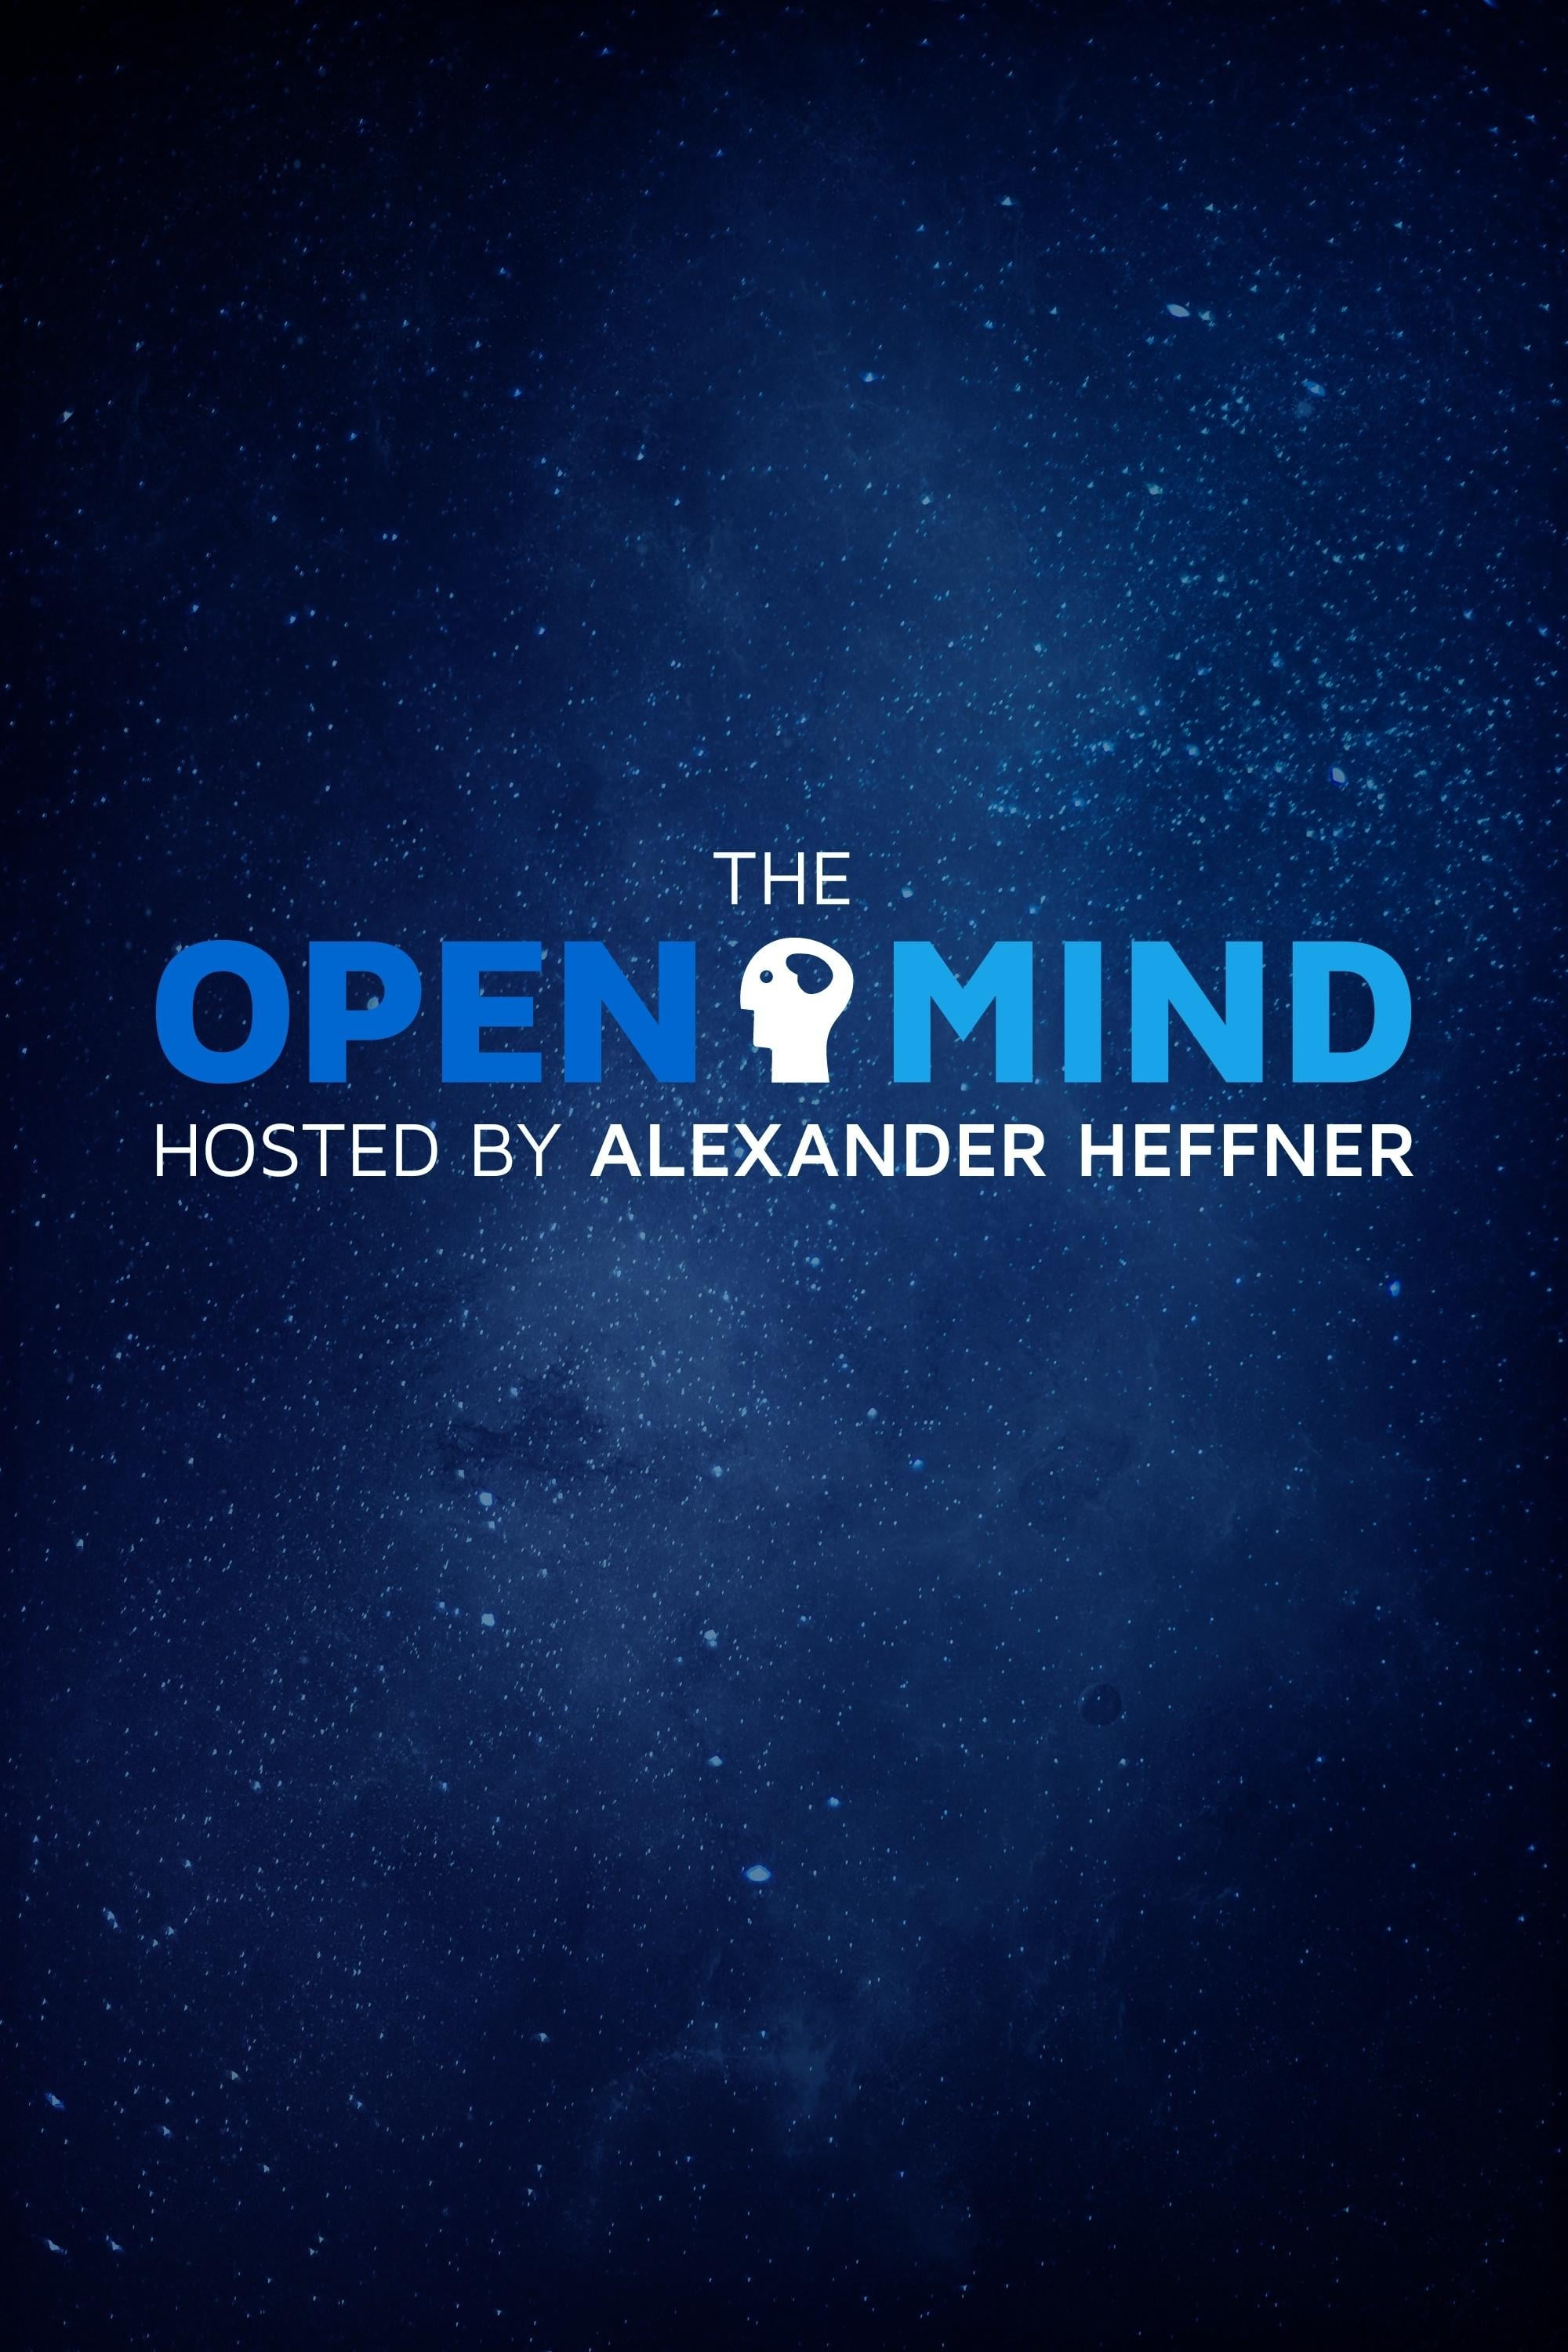 The Open Mind (1956)